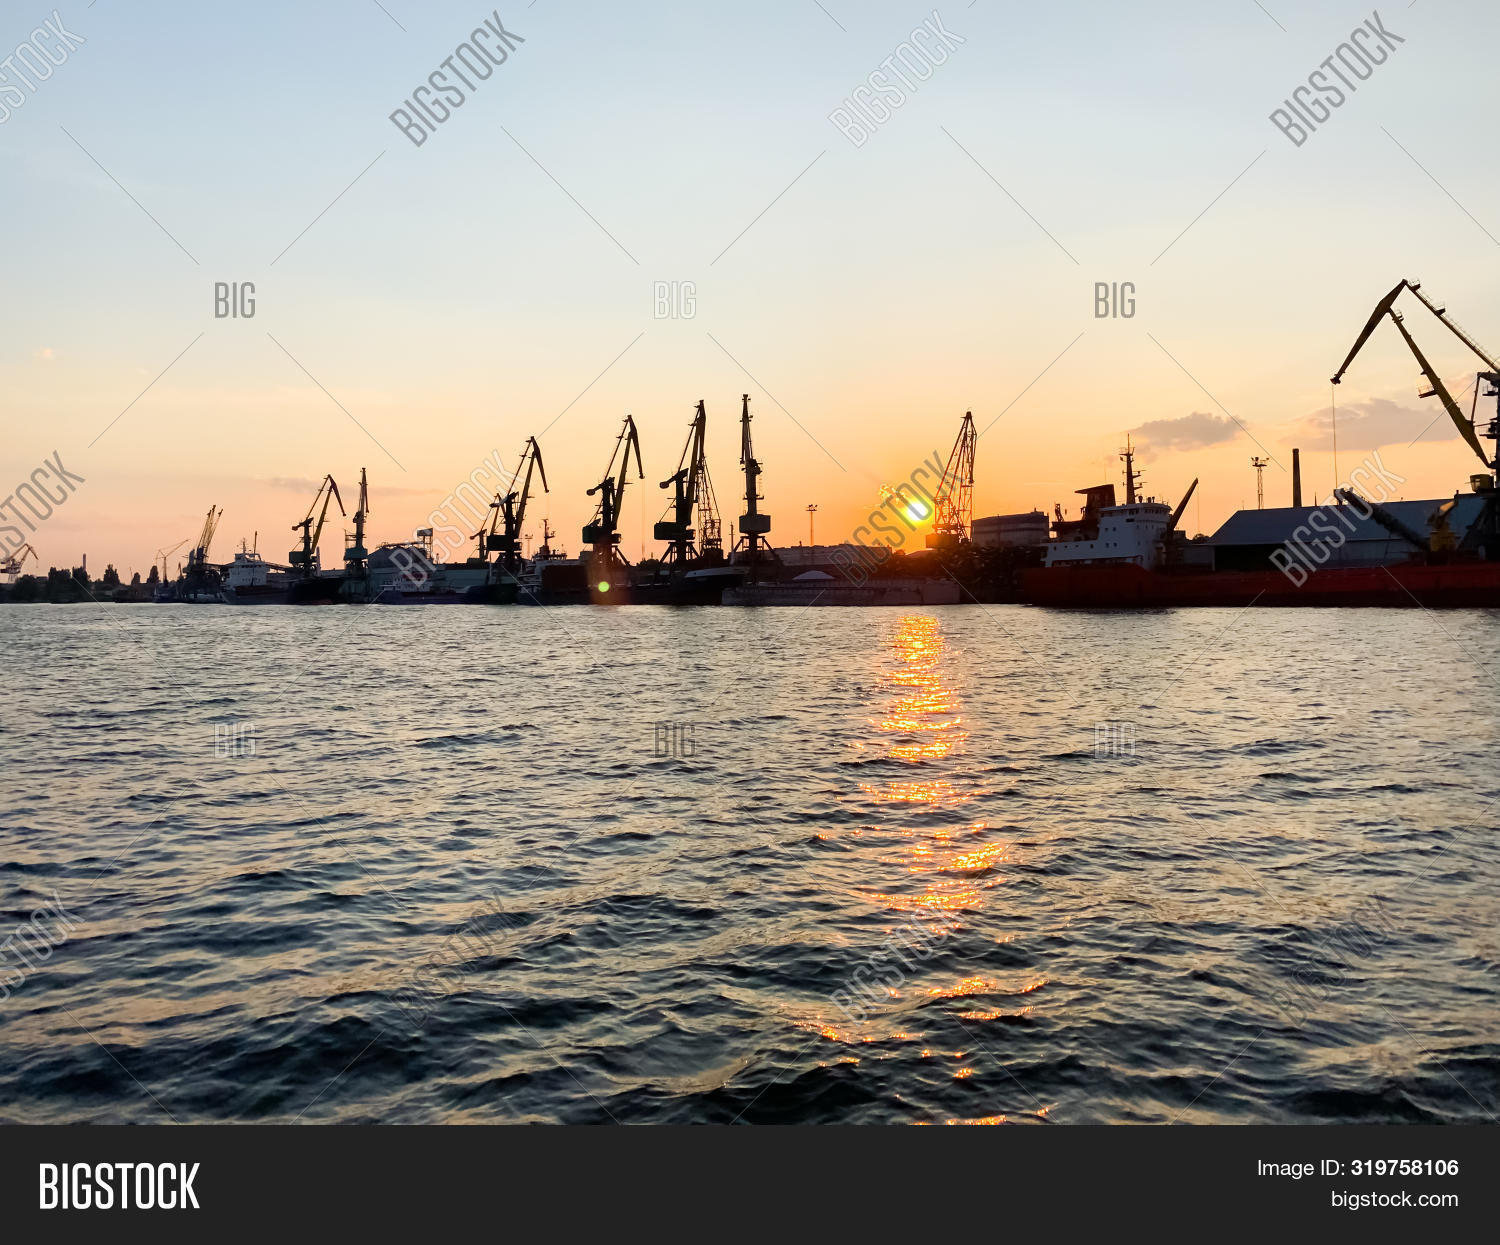 beautiful,building,busy,canal,cargo,city,cityscape,delivery,dnieper,dnipro,economics,factories,goods,hub,industrial,industry,infrastructure,kherson,loading,logistics,mobile,night,photo,plants,port,reservoir,river,sea,shipping,ships,sky,south,storage,stream,summer,sun,sunset,tourism,trade,traffic,transport,transportation,travel,ukraine,unloading,vessel,view,water